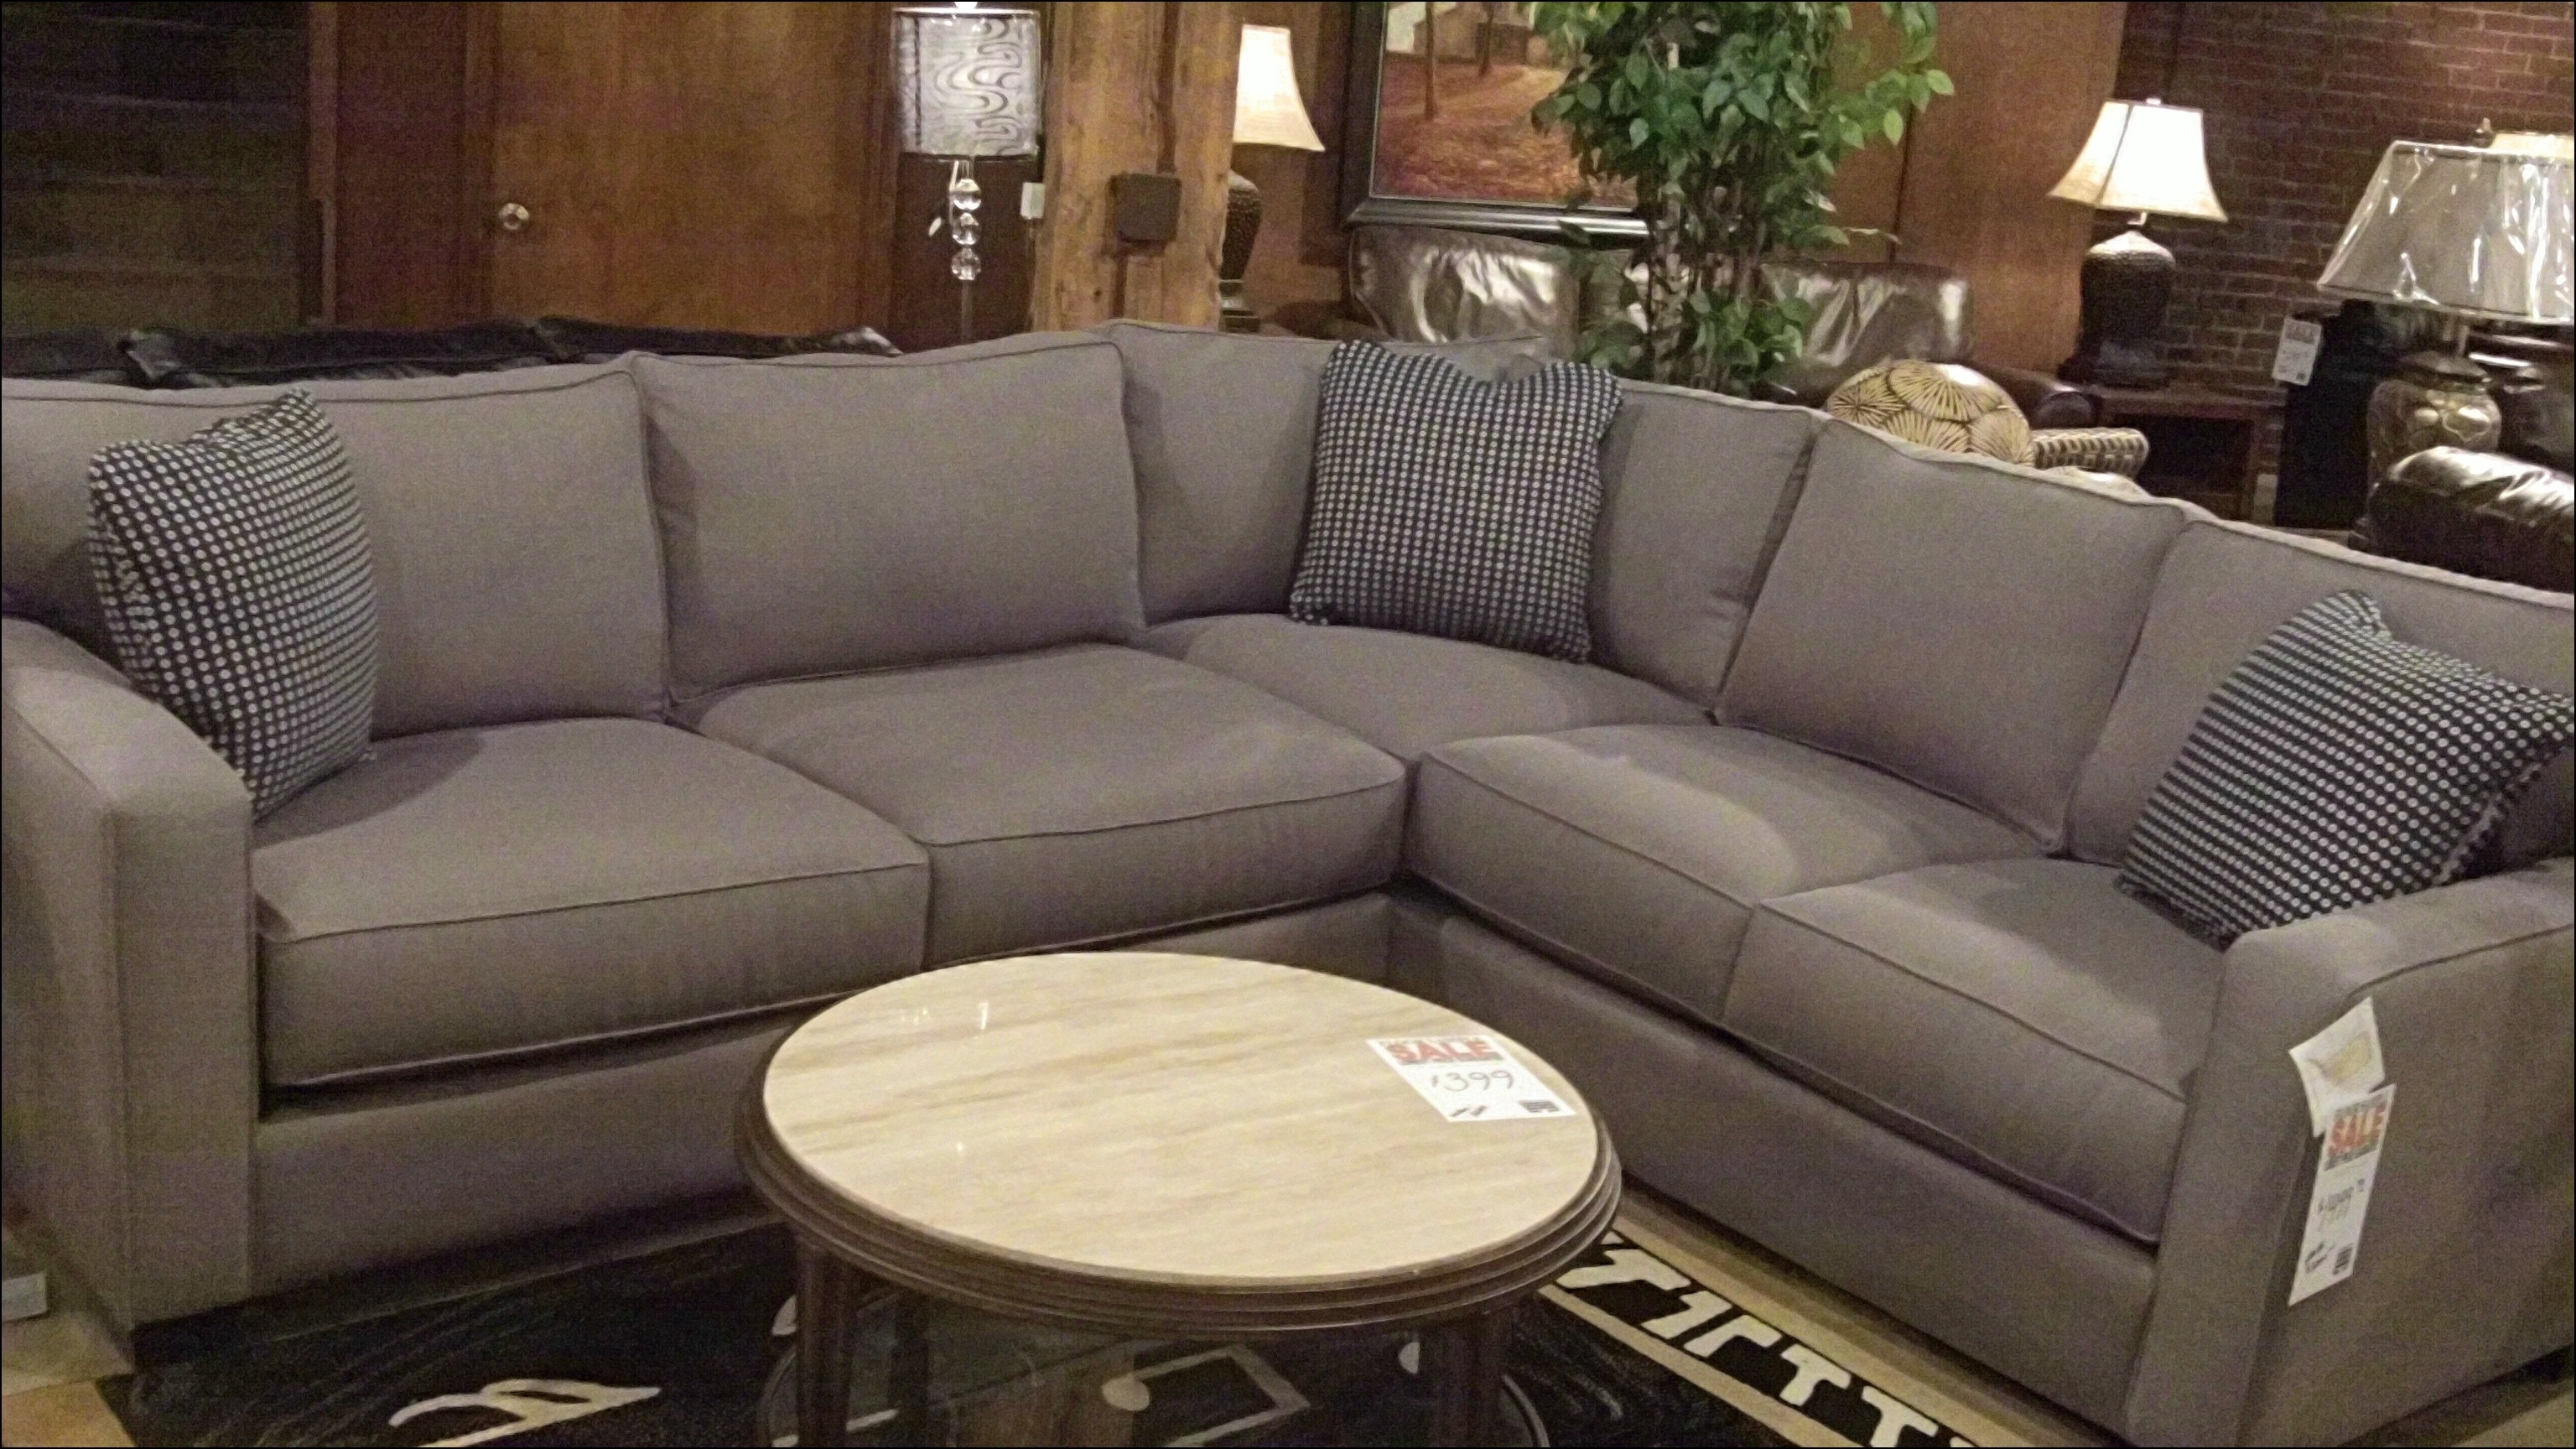 Stylish Sectional Sofas Tulsa Ok – Buildsimplehome Inside Tulsa Sectional Sofas (View 2 of 10)